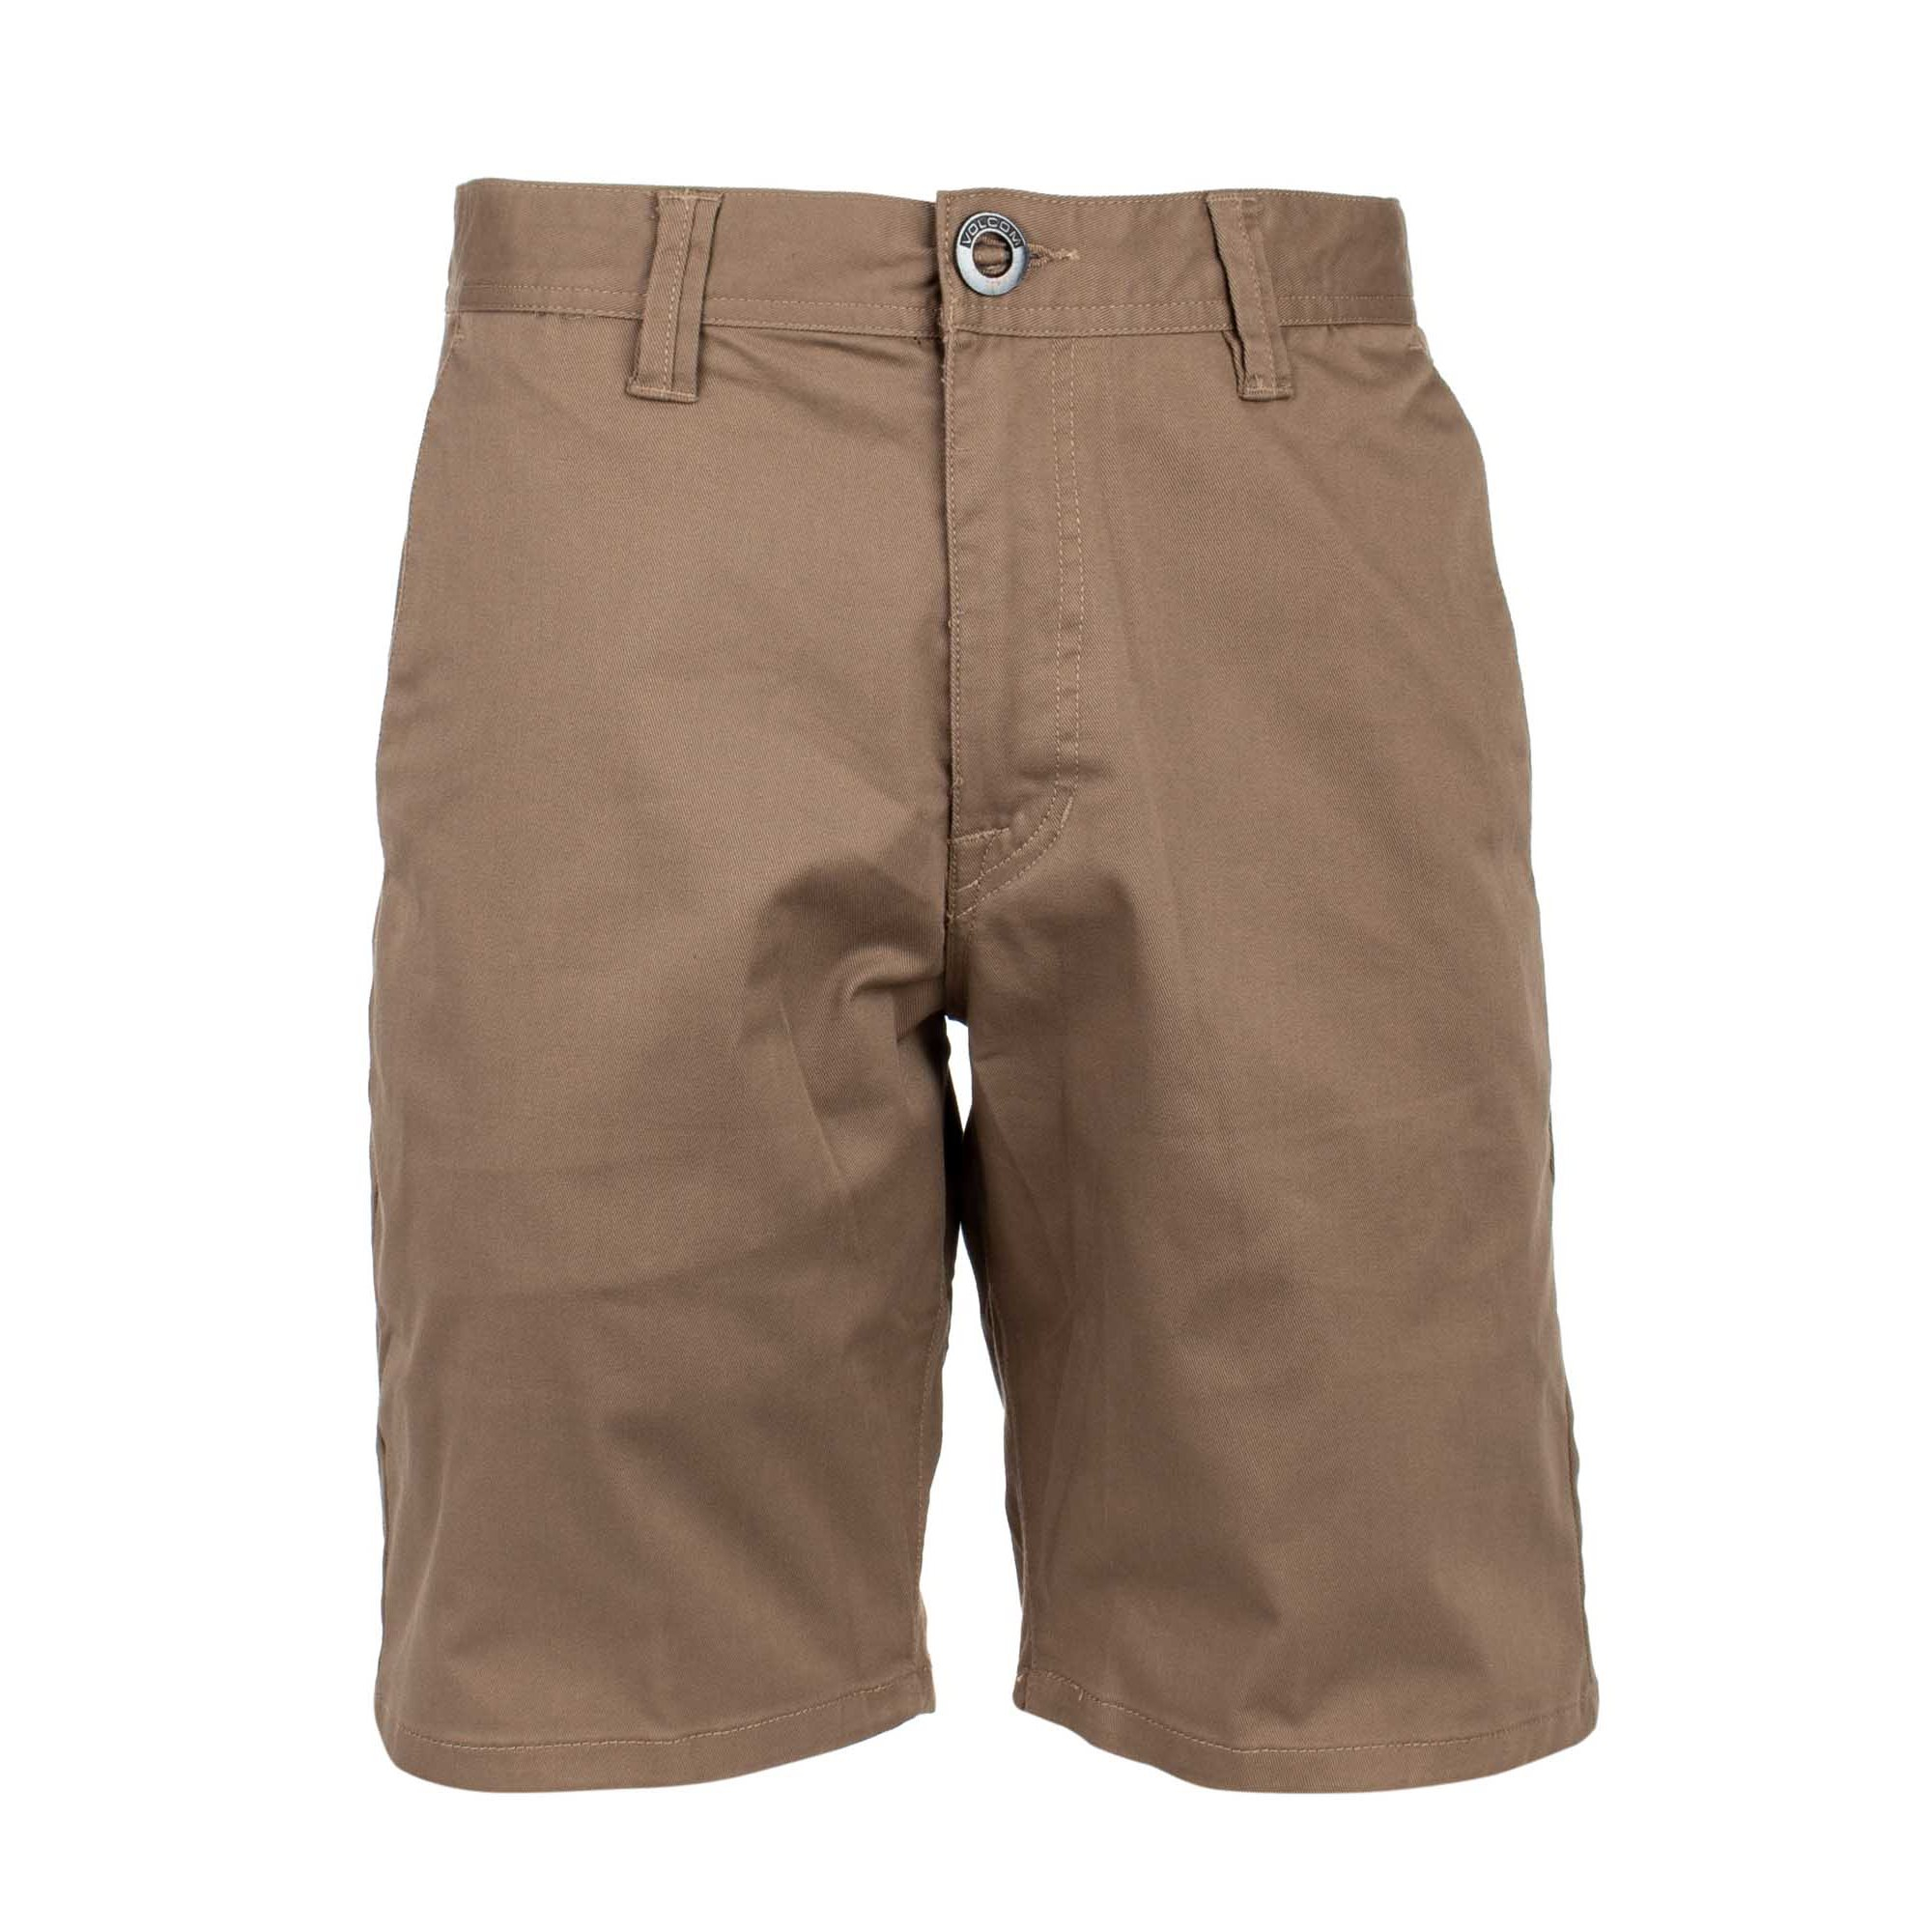 Bermuda iSolid Modern Stretch ( More Colors )